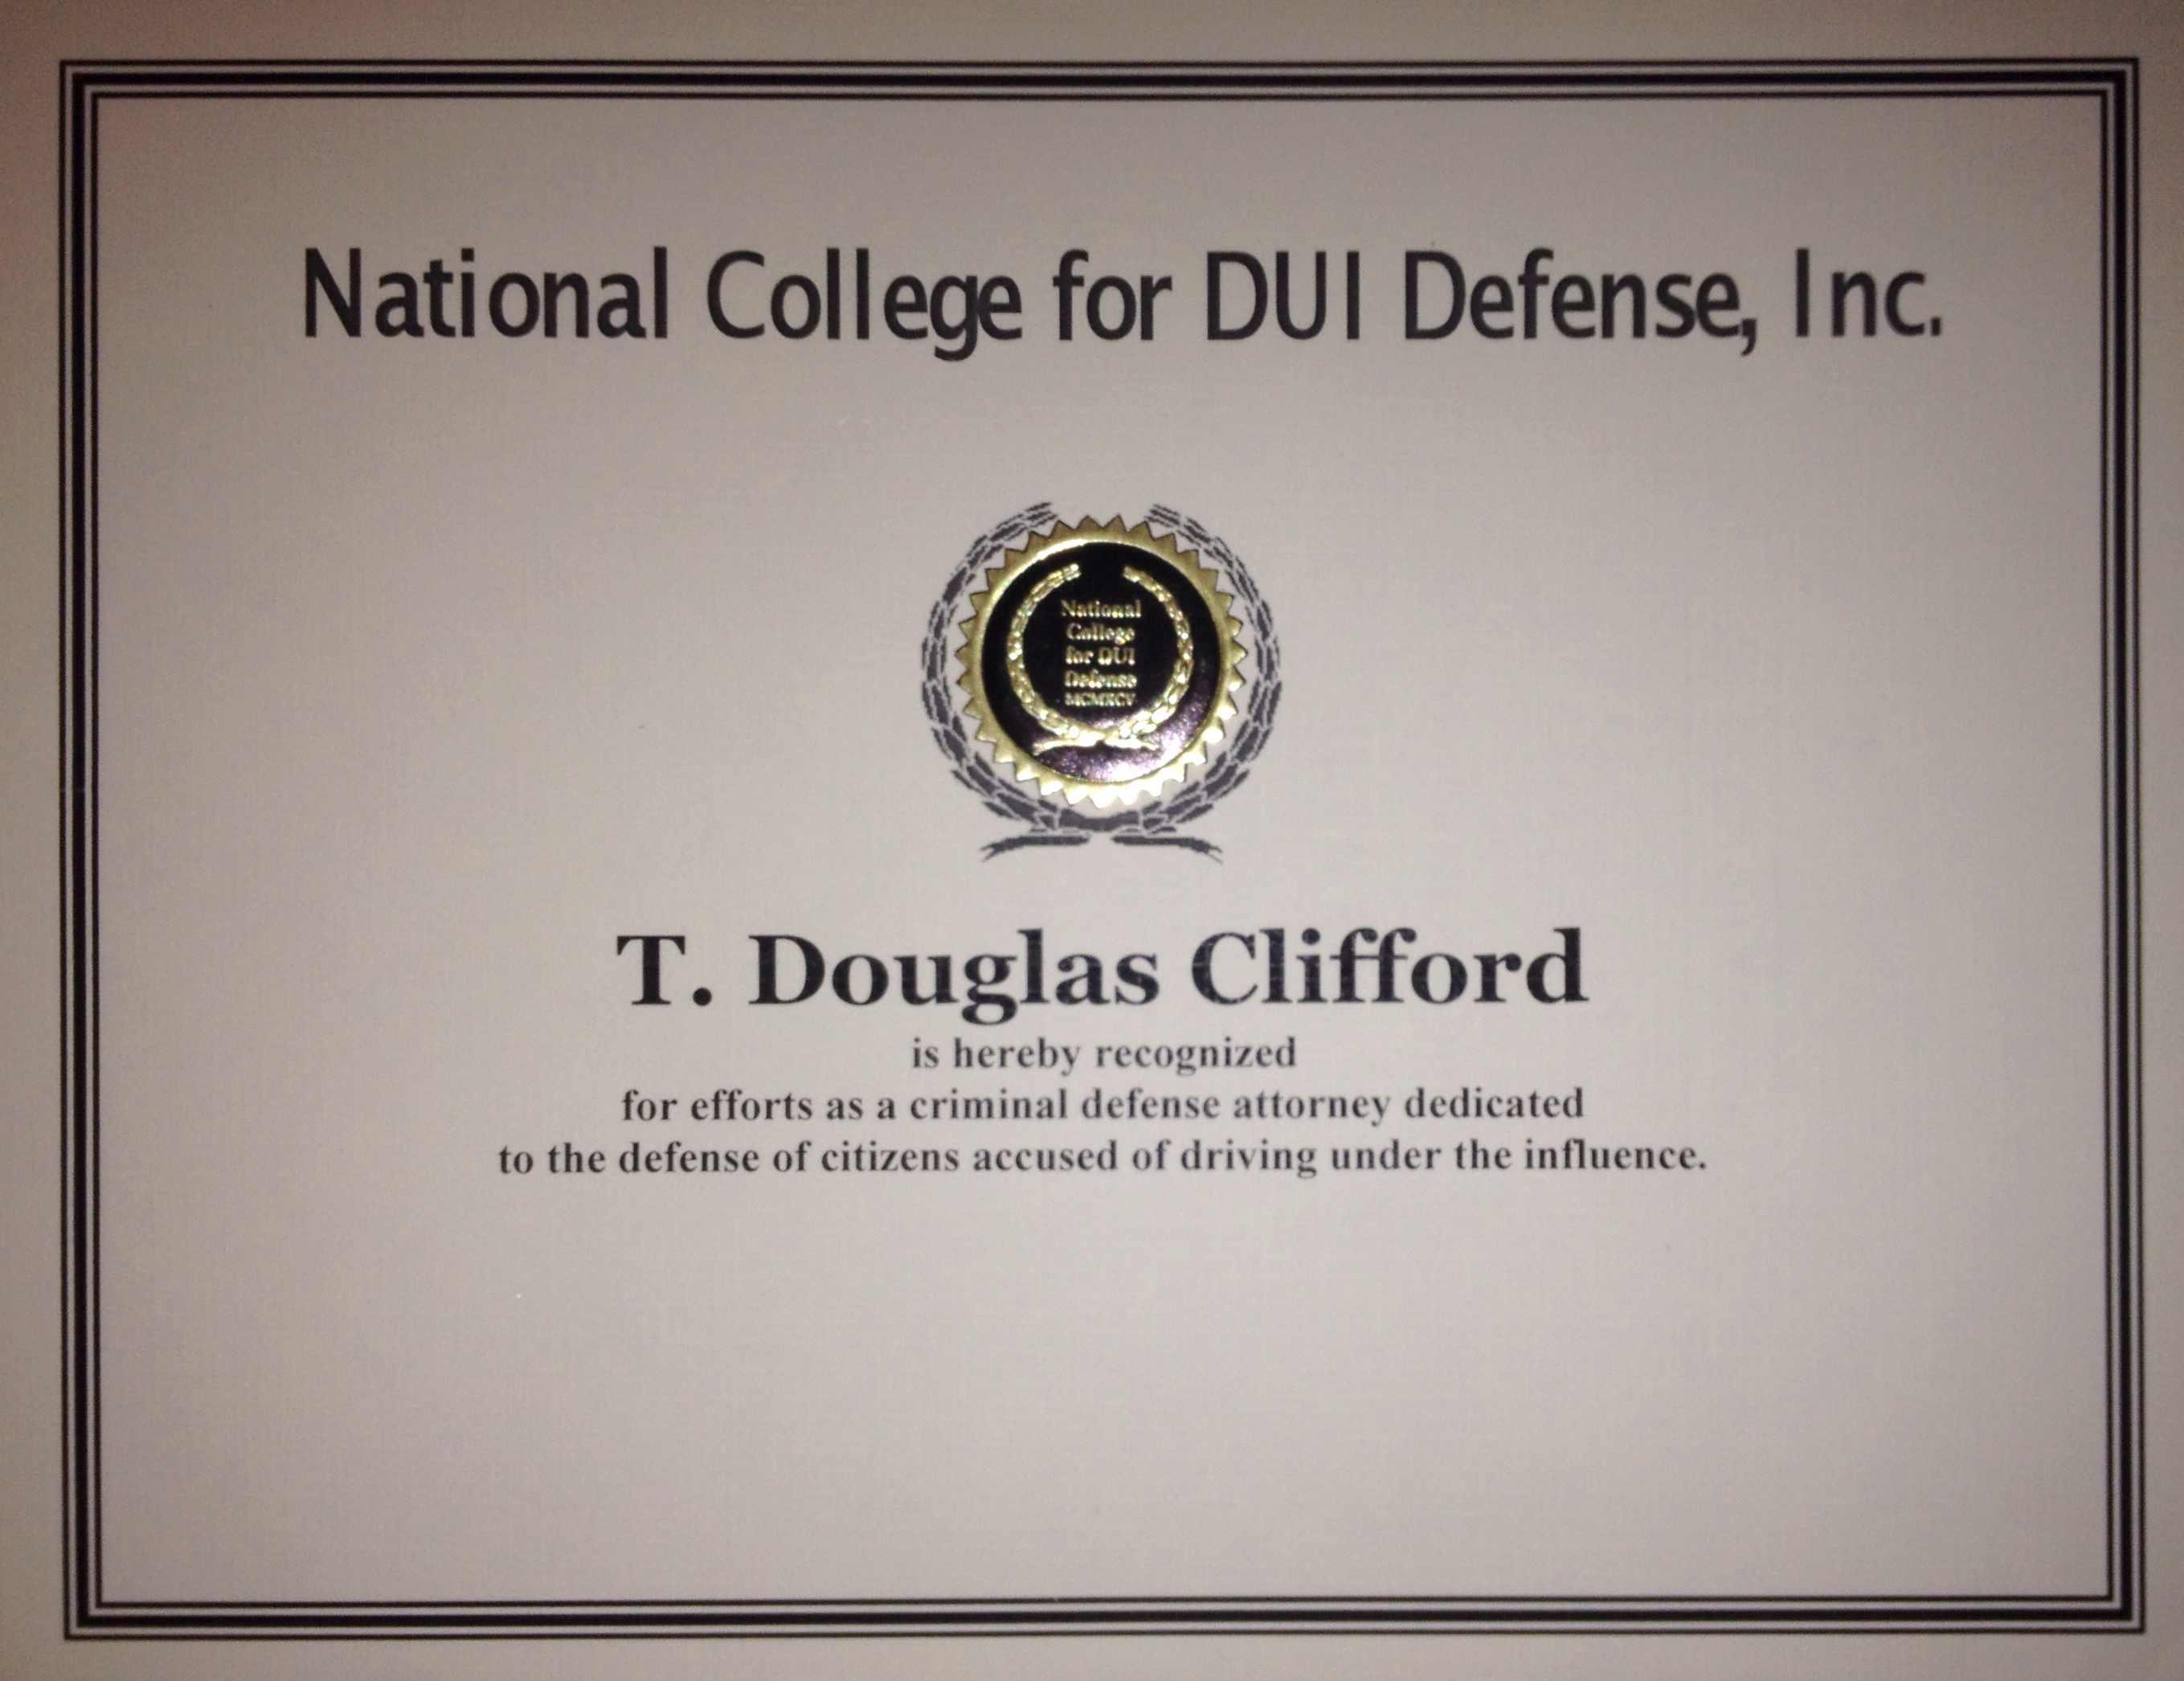 Law Offices of T. Douglas Clifford, LLC